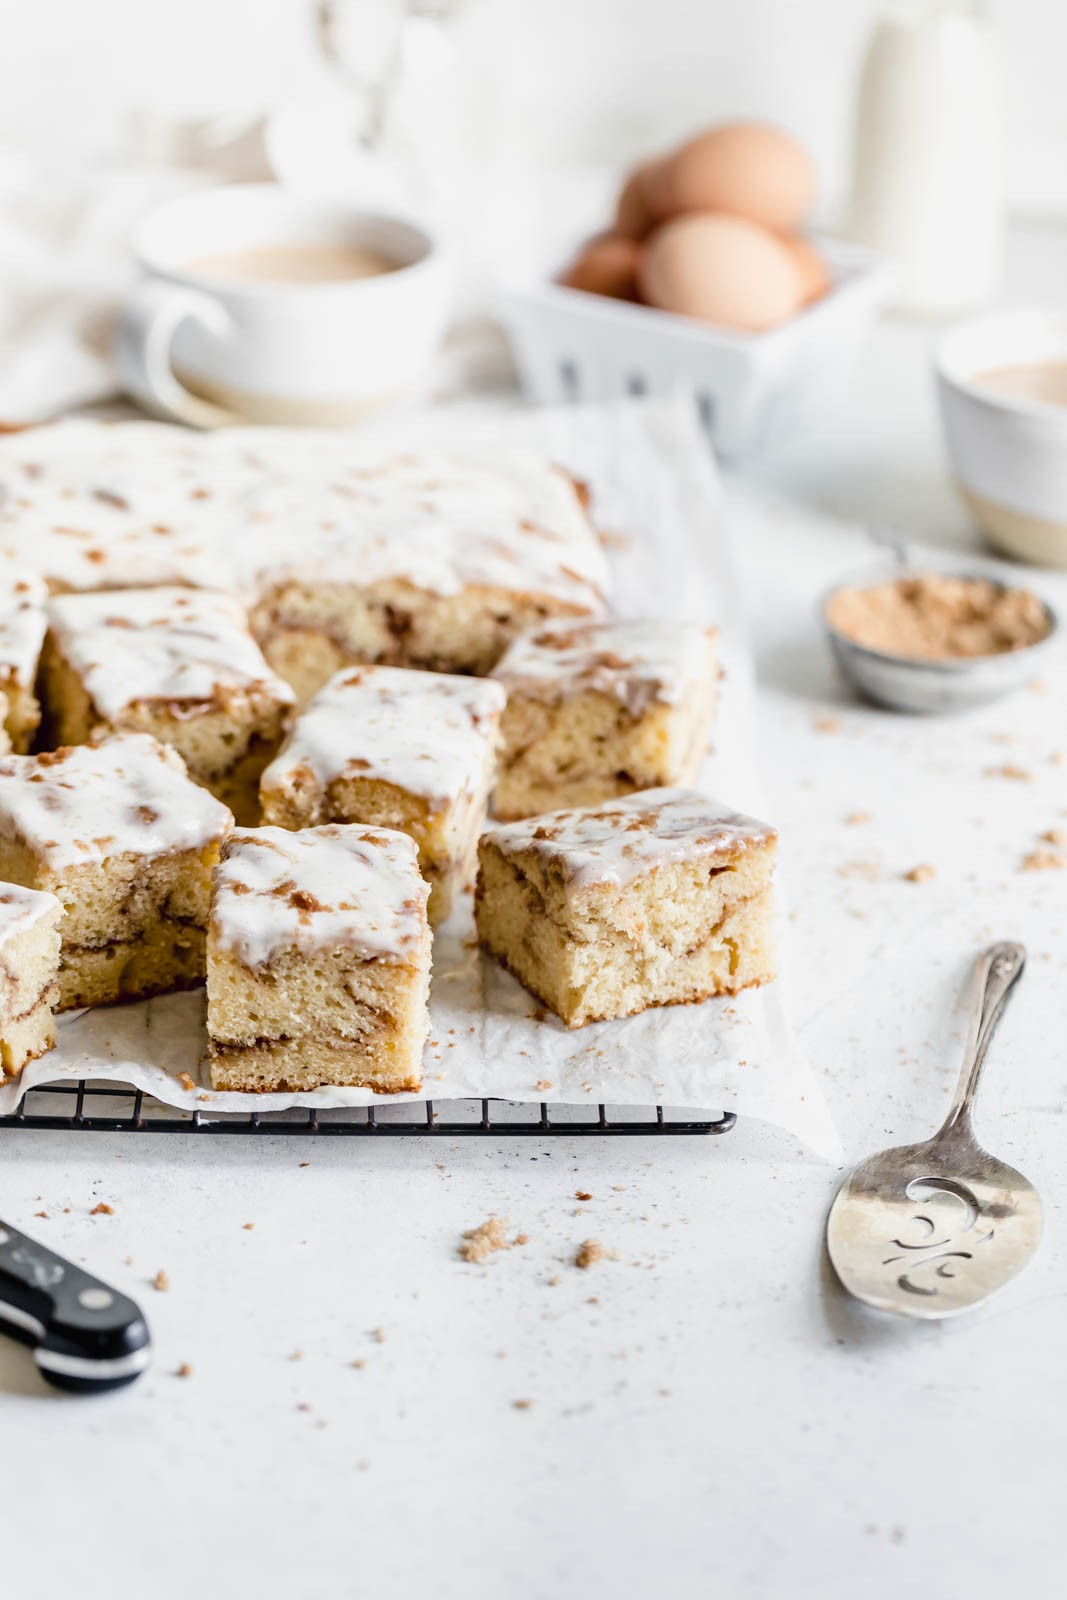 Buttery cinnamon roll cake swirled with ribbons of cinnamon and topped with a cream cheese glaze. All the decadence of a Cinnabon in half the time.